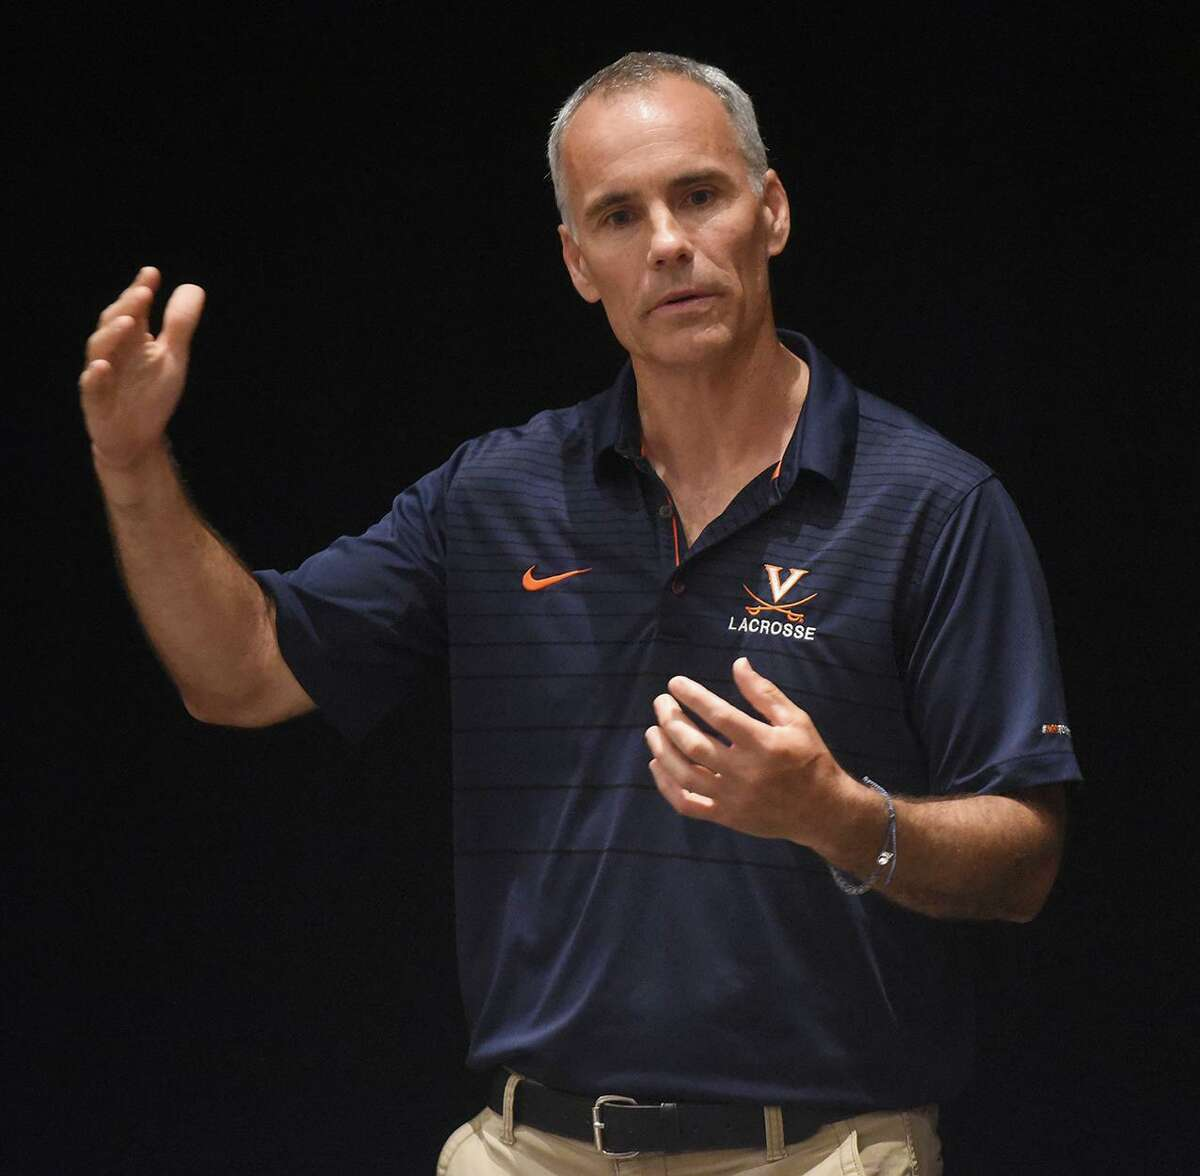 University of Virginia men's lacrosse coach Lars Tiffany addresses the audience during a talk, including a question and answer session, at the King Performing Arts Center at King School in Stamford on Tuesday.